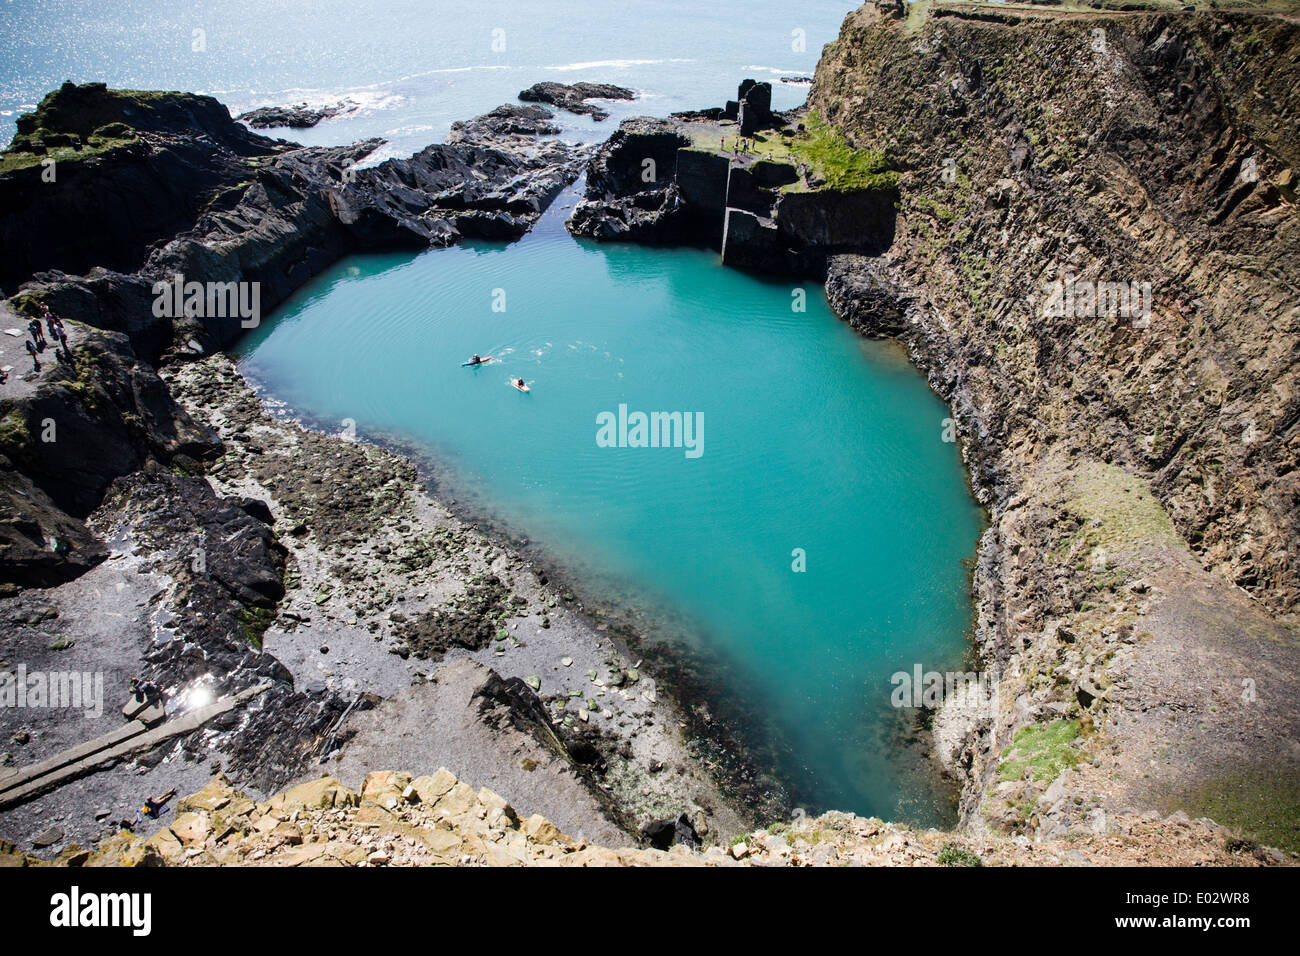 Two kayakers in the Blue Lagoon in Abereiddi Bay, Pembrokeshire, Wales. - Stock Image